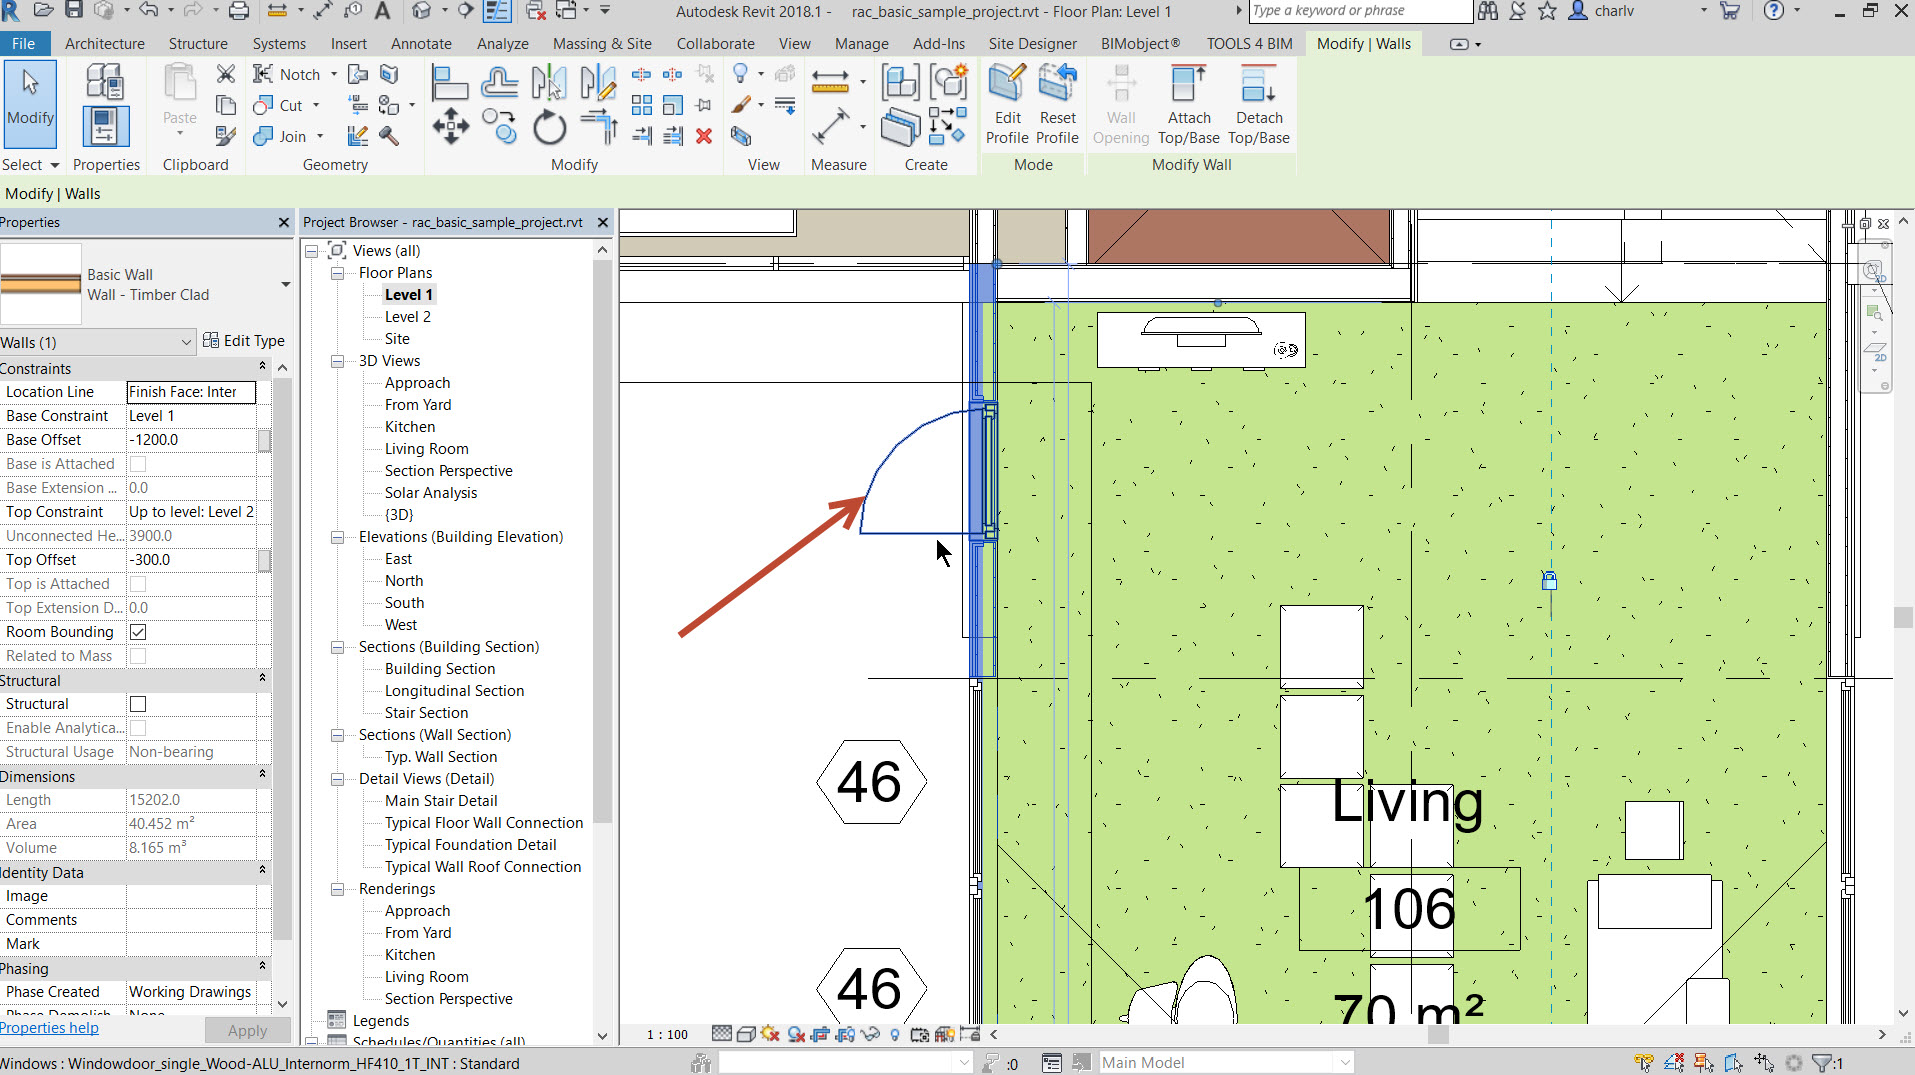 3g Free Revit content from BIMobject